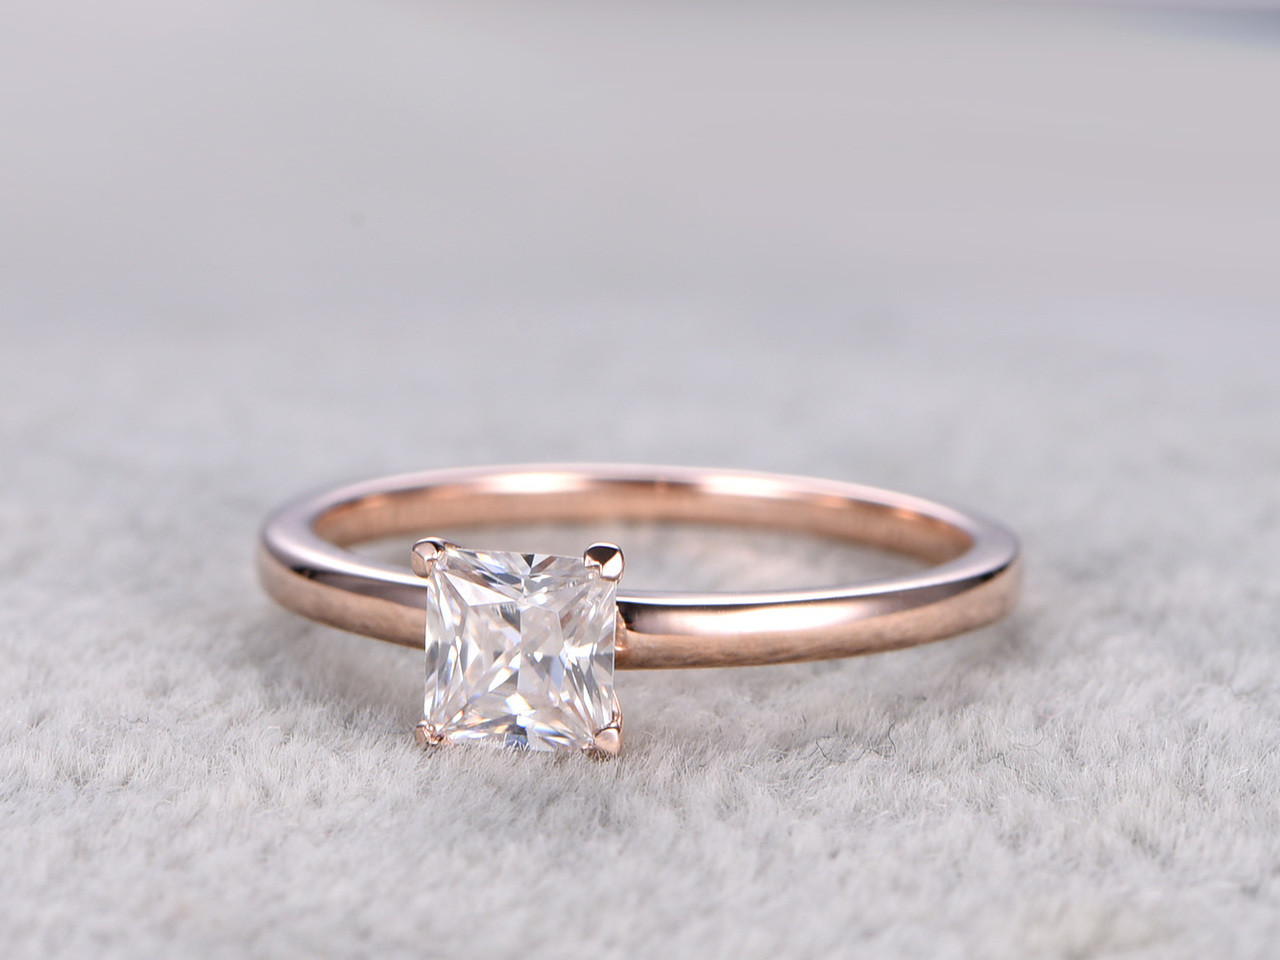 Moissanite Princess Cut Enement Ring | Moissanite Princess Cut Engagement Ring